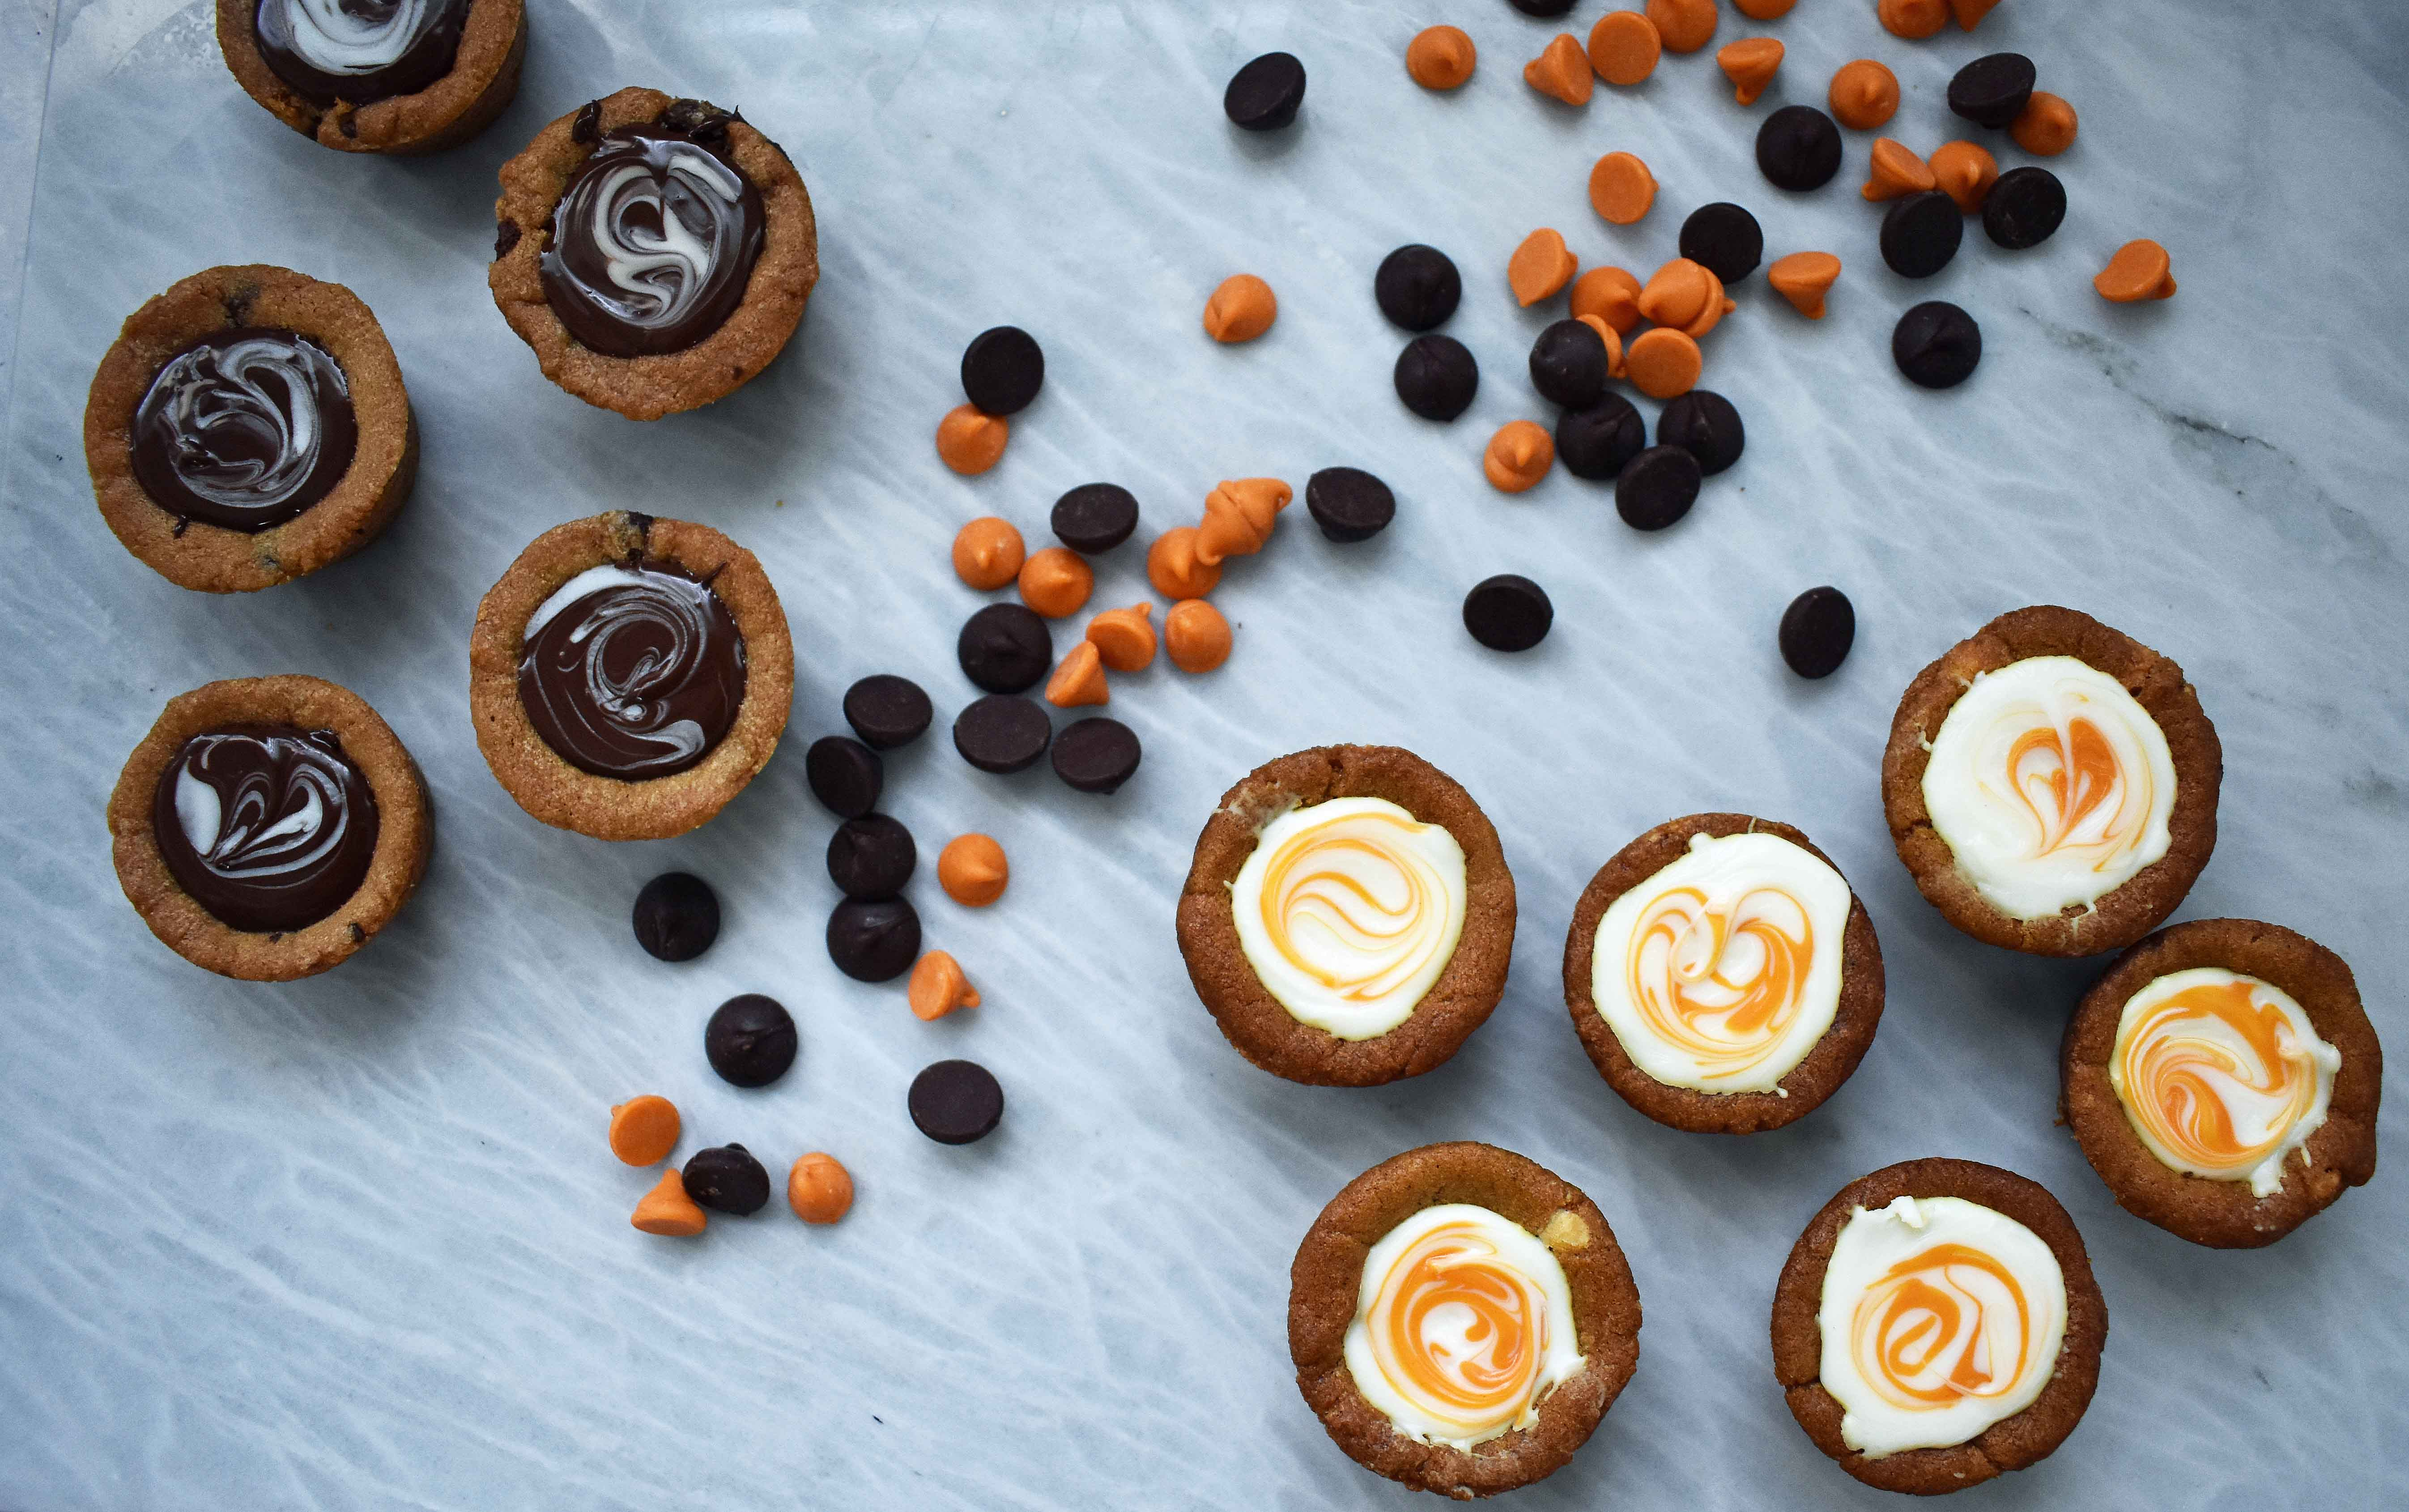 Chocolate Ganache Filled Cookie Cups. Bake Some Good by Nestle. #BakeSomeGood